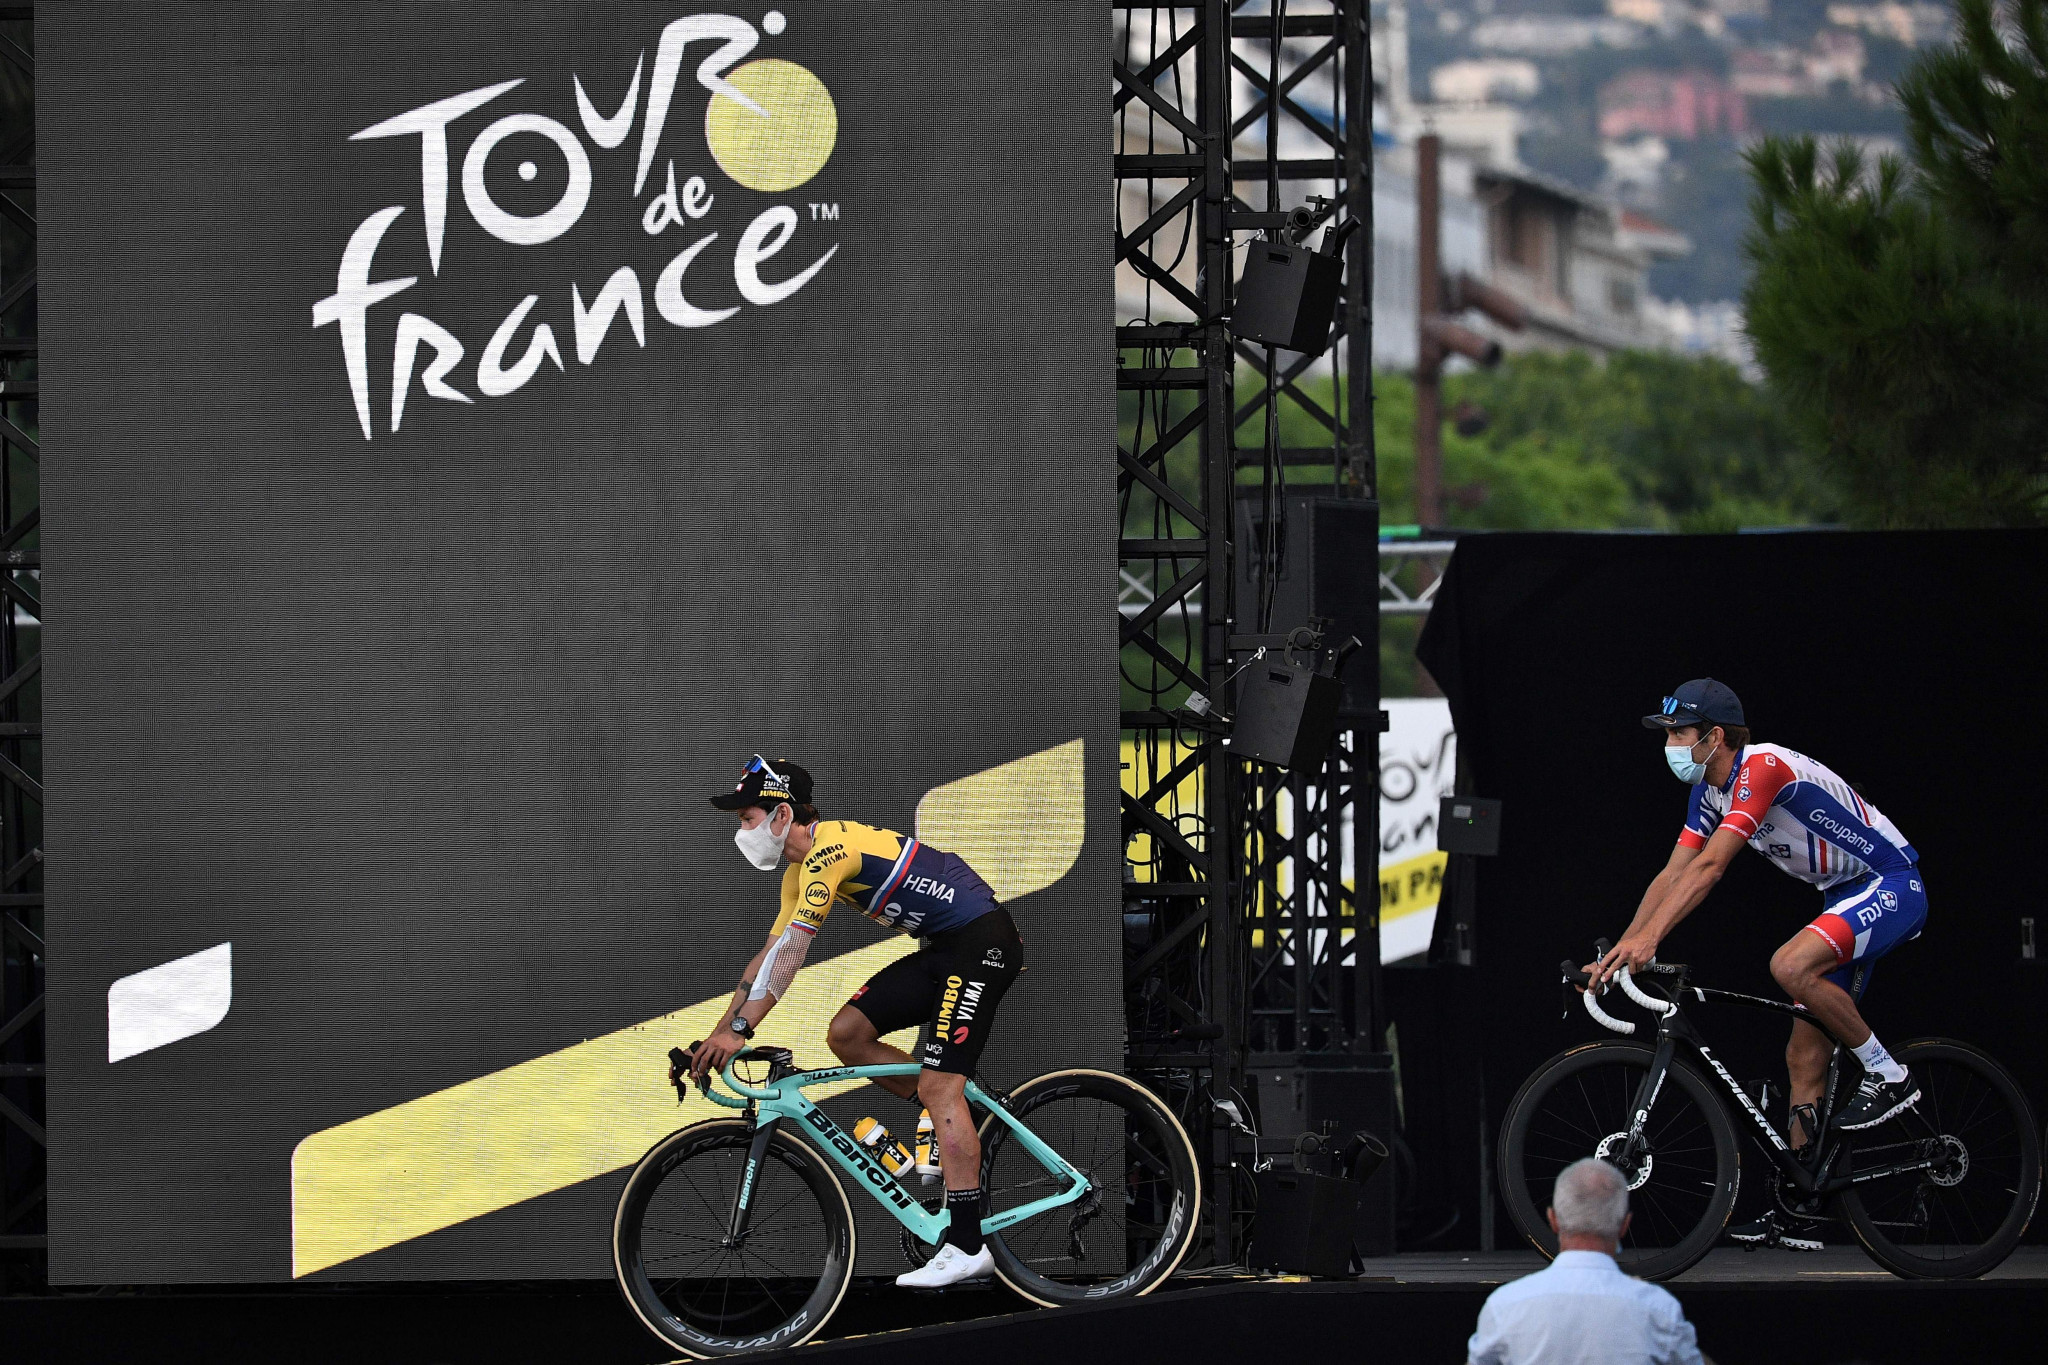 Primoz Roglic is among the main contenders to win this year's race ©Getty Images